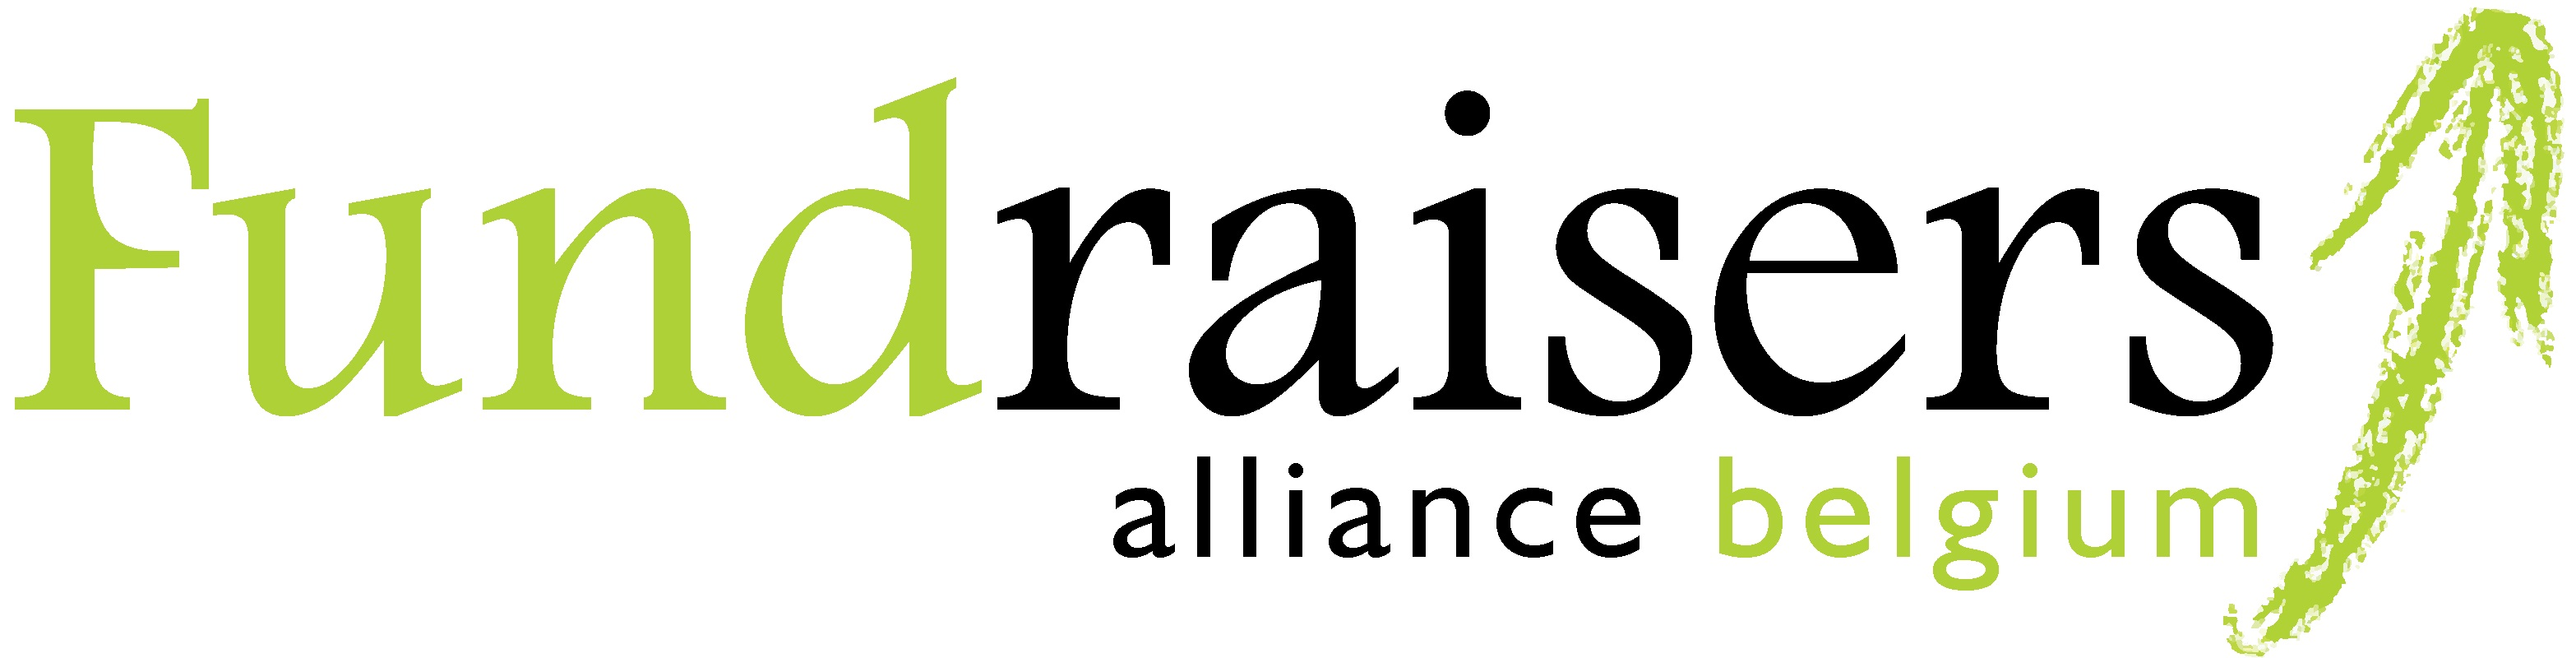 Fundraisers Alliance Belgium logo